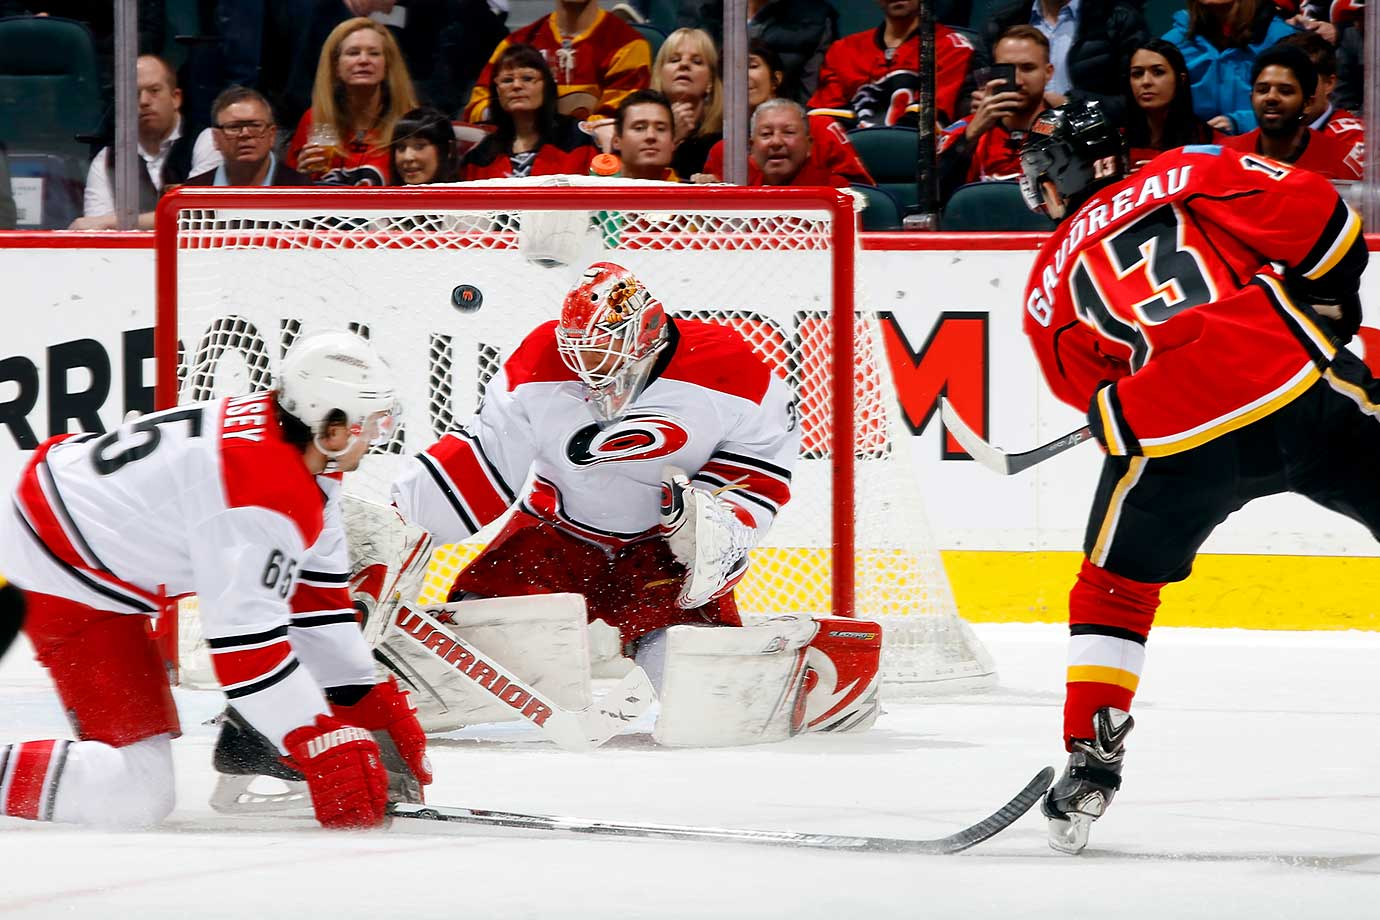 Johnny Gaudreau of the Calgary Flames shoots the puck off the crossbar against Eddie Lack of the Carolina Hurricanes at Scotiabank Saddledome in Calgary, Alberta, Canada.